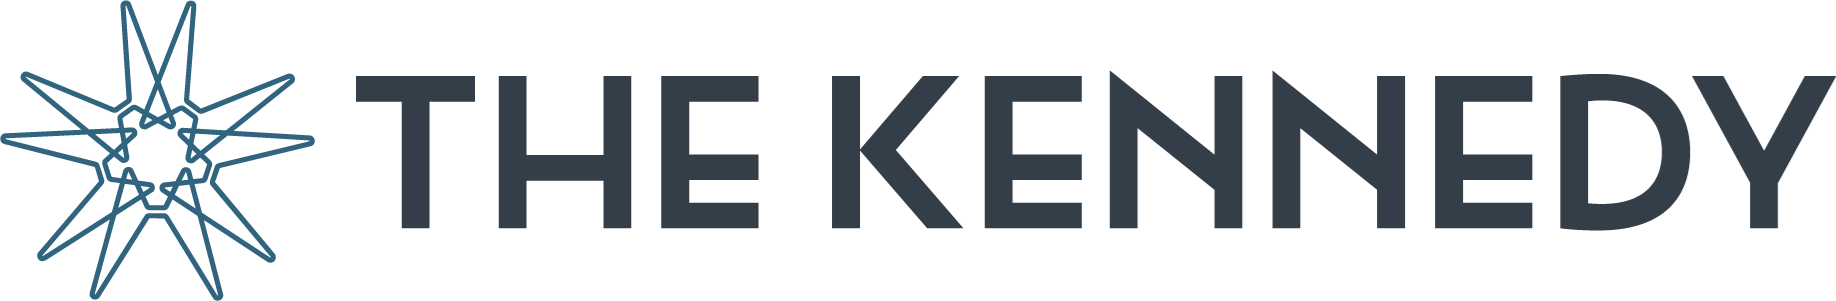 The Kennedy Property Logo 17